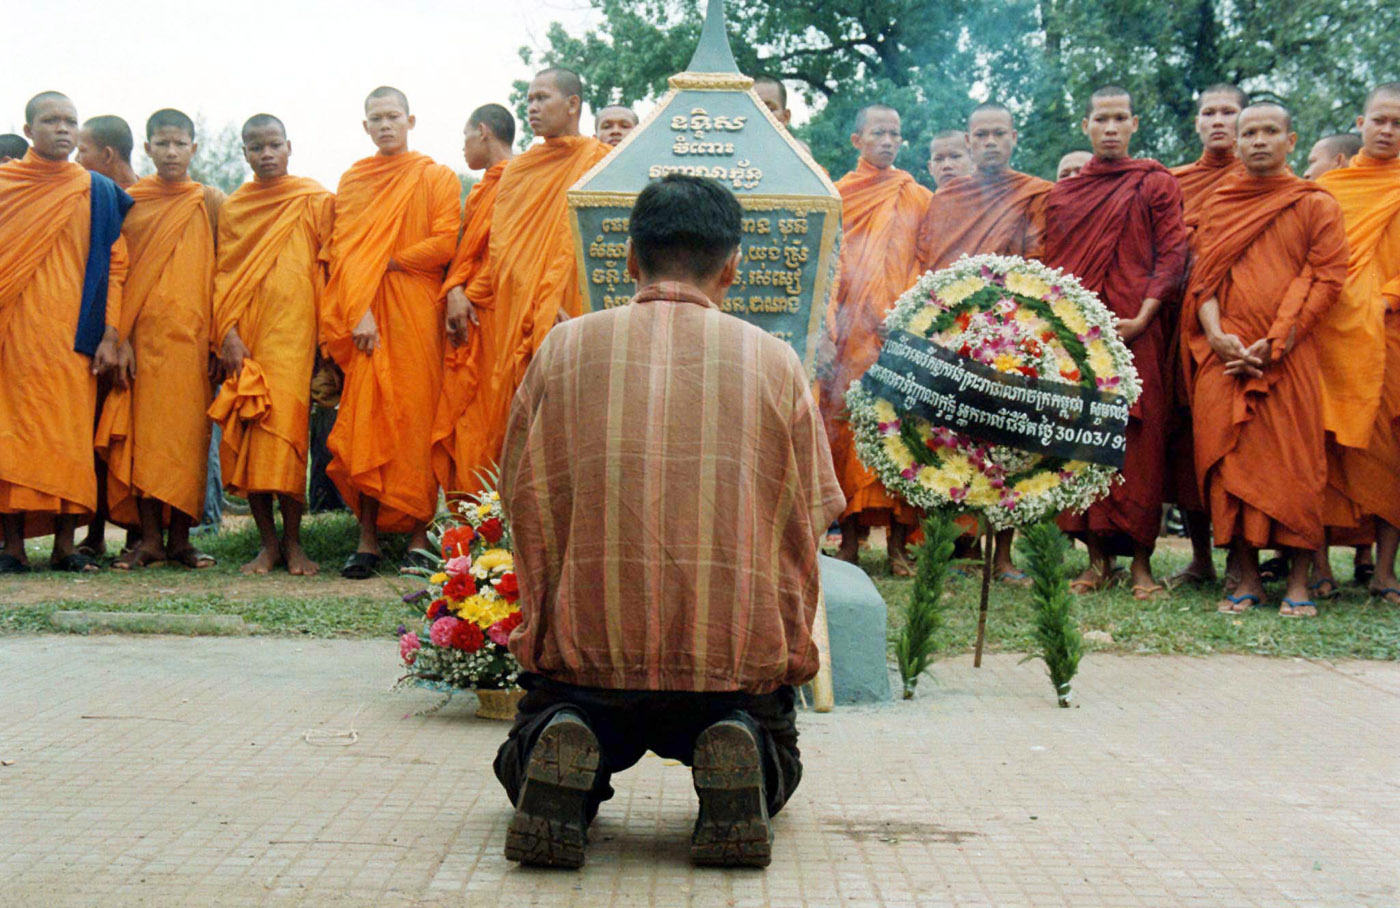 People gather at a memorial site on March 30, 1997